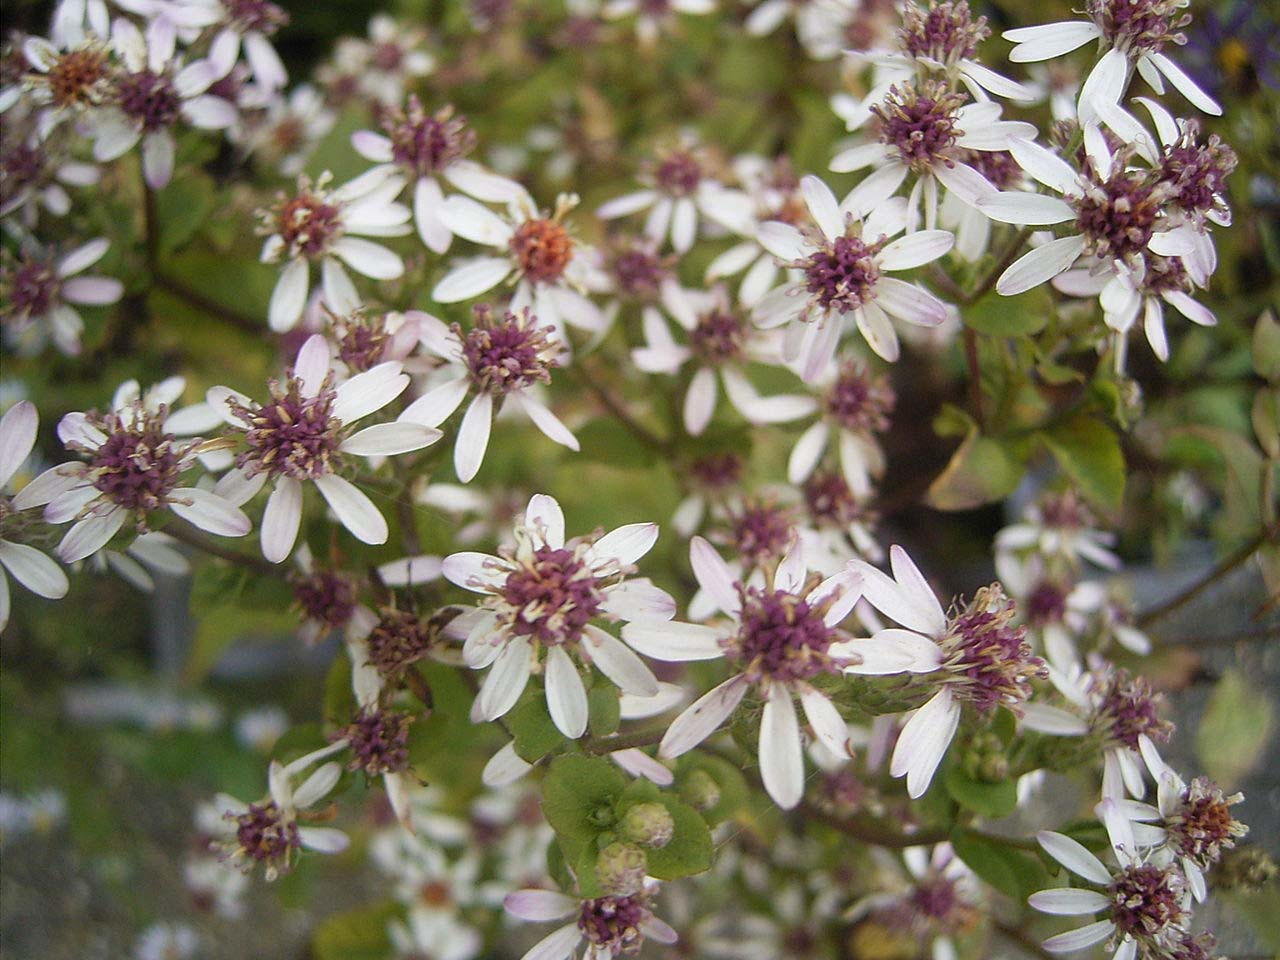 Eurybia divaricata (formerly Aster divaricata) (white wood aster)